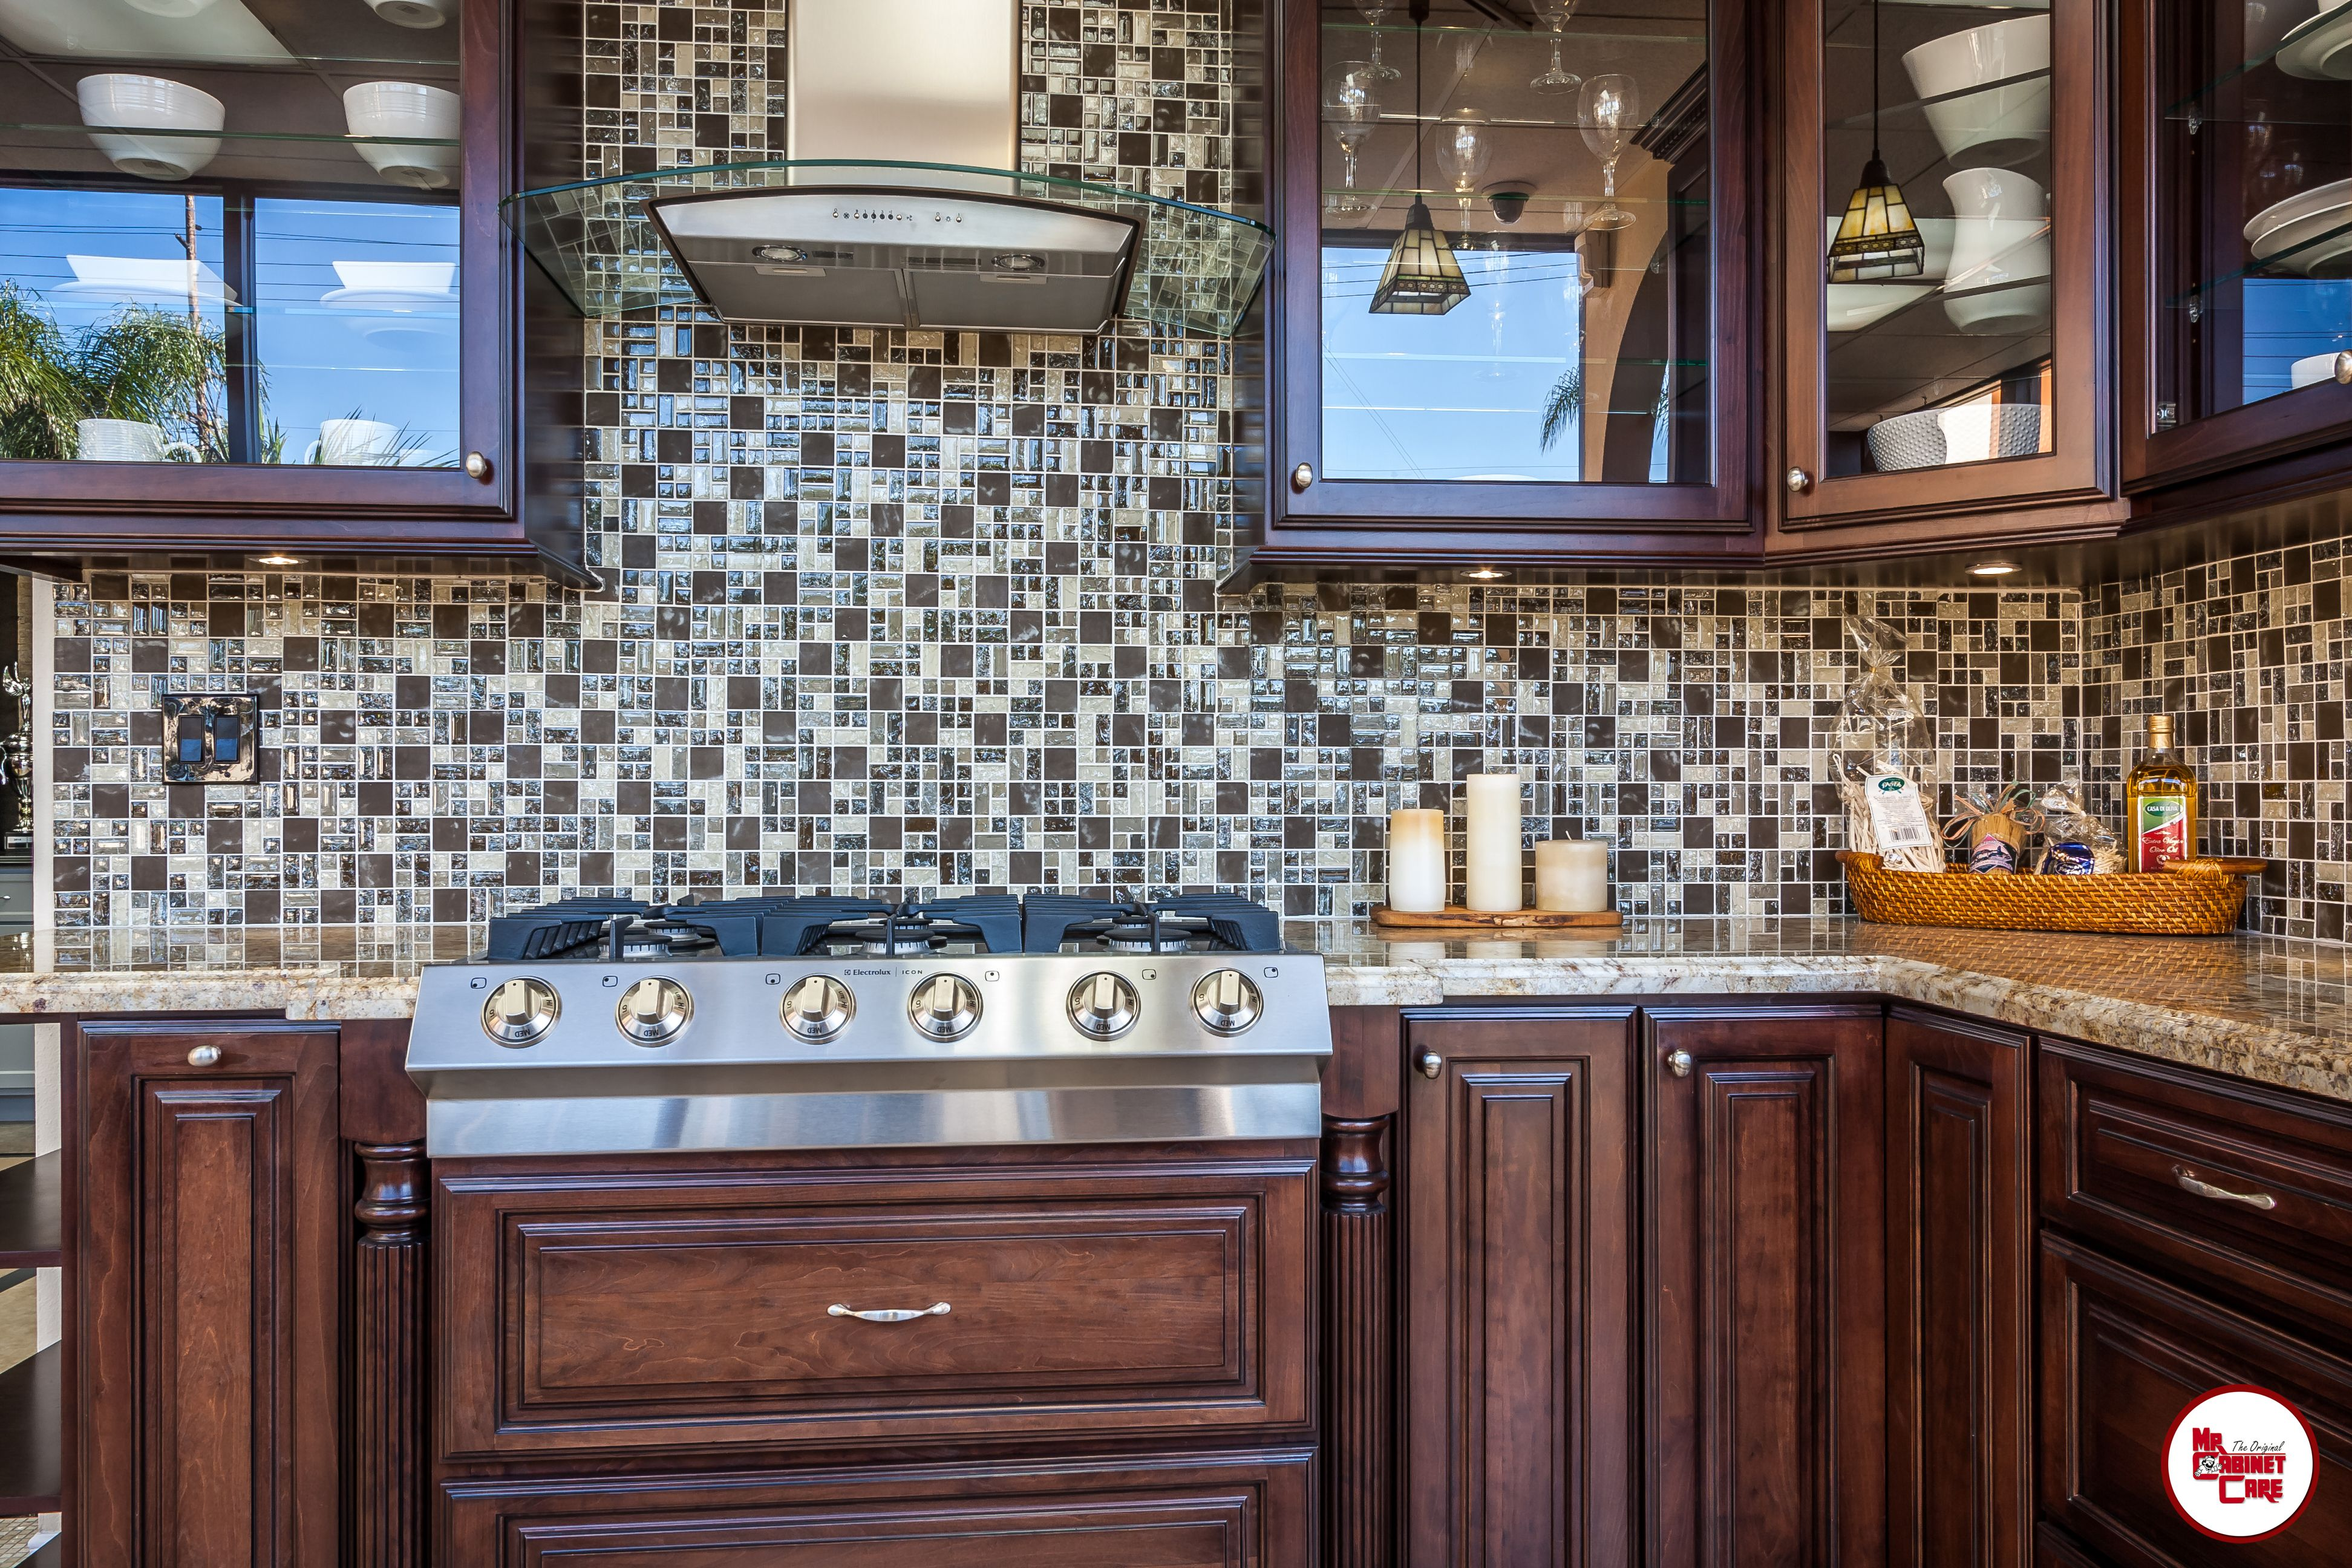 Visit Our Showroom In Person And Discuss Your Design Ideas With One Of Our Consultants Kitchenremodeling Kitchen Cabinets Kitchen Remodel Kitchen Design